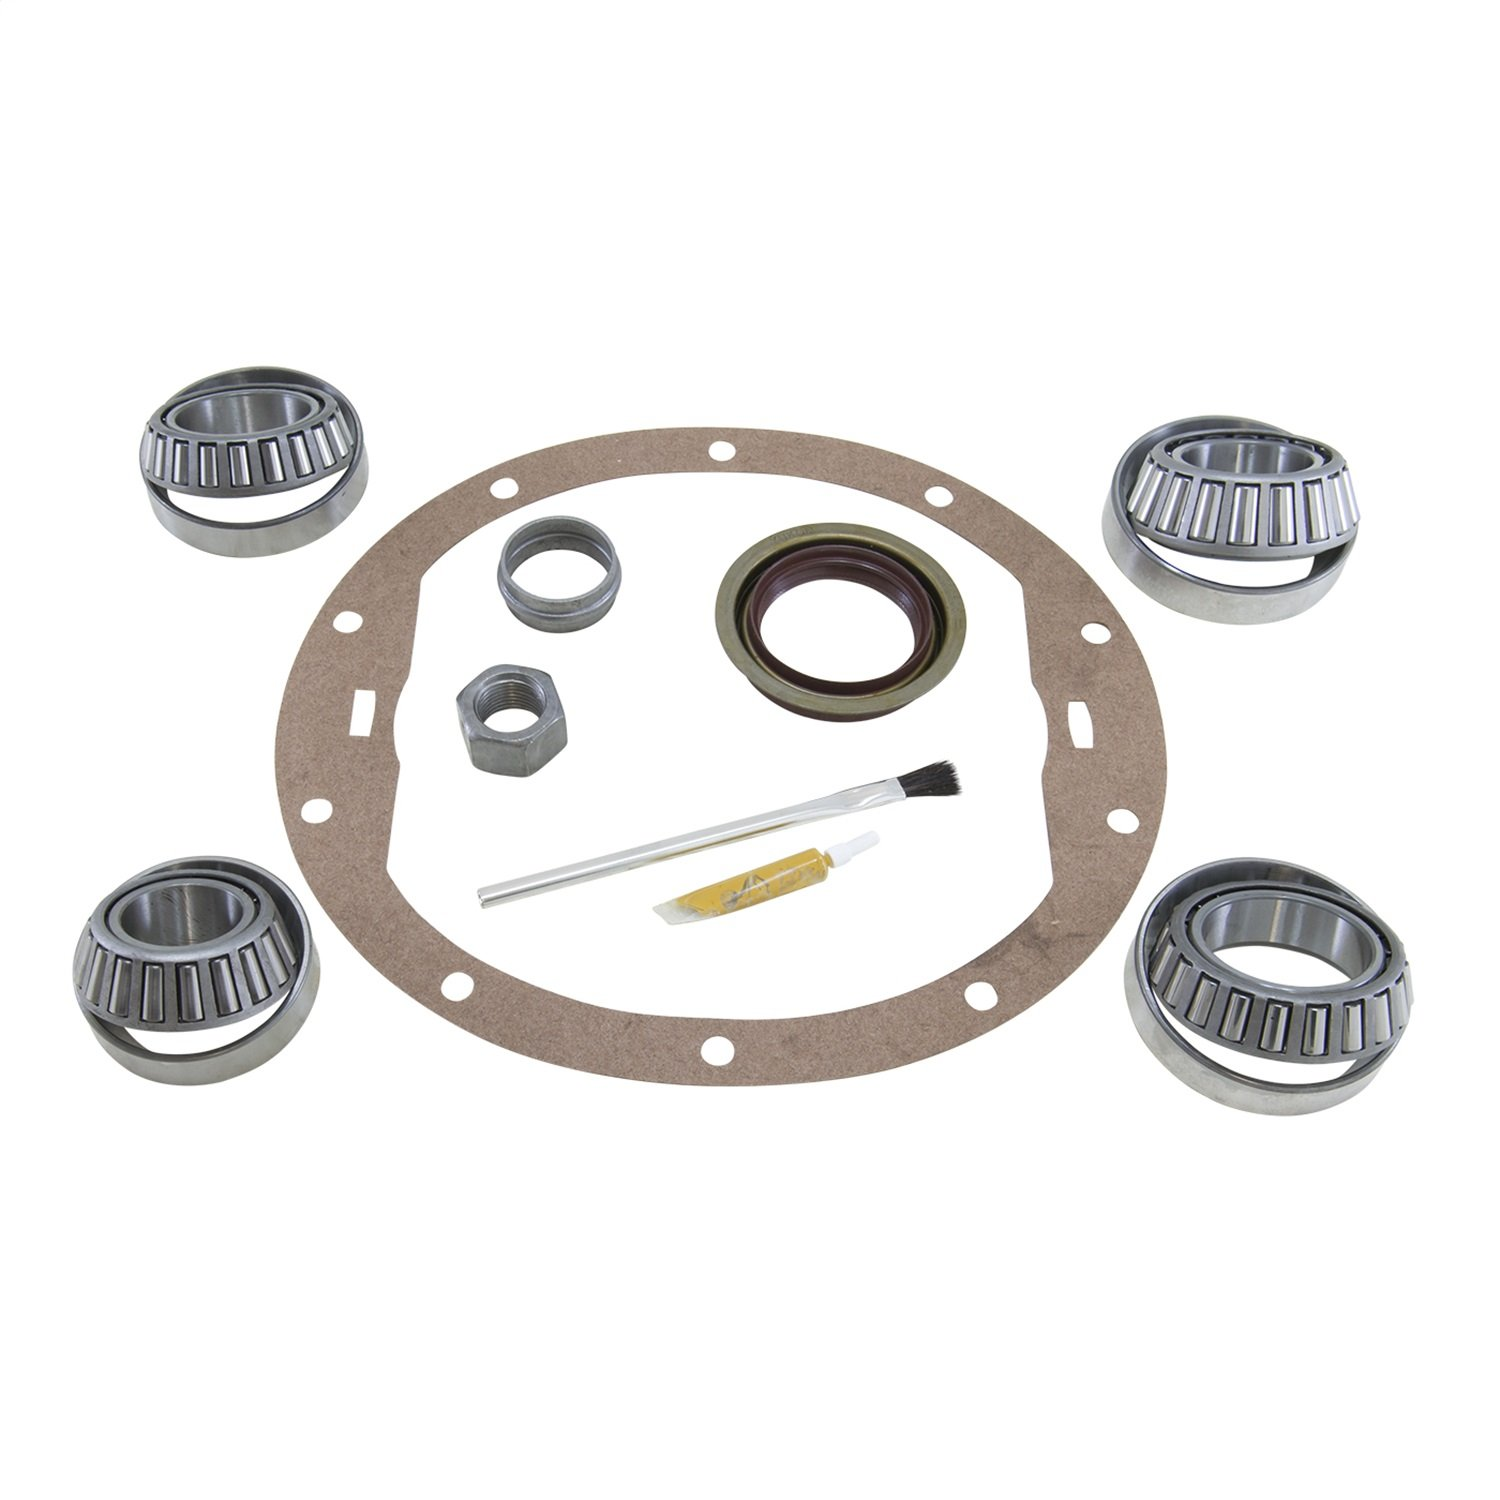 USA Standard Gear (ZBKGM8.5) Bearing Kit for GM 8.5 Rear Differential by USA Standard Gear